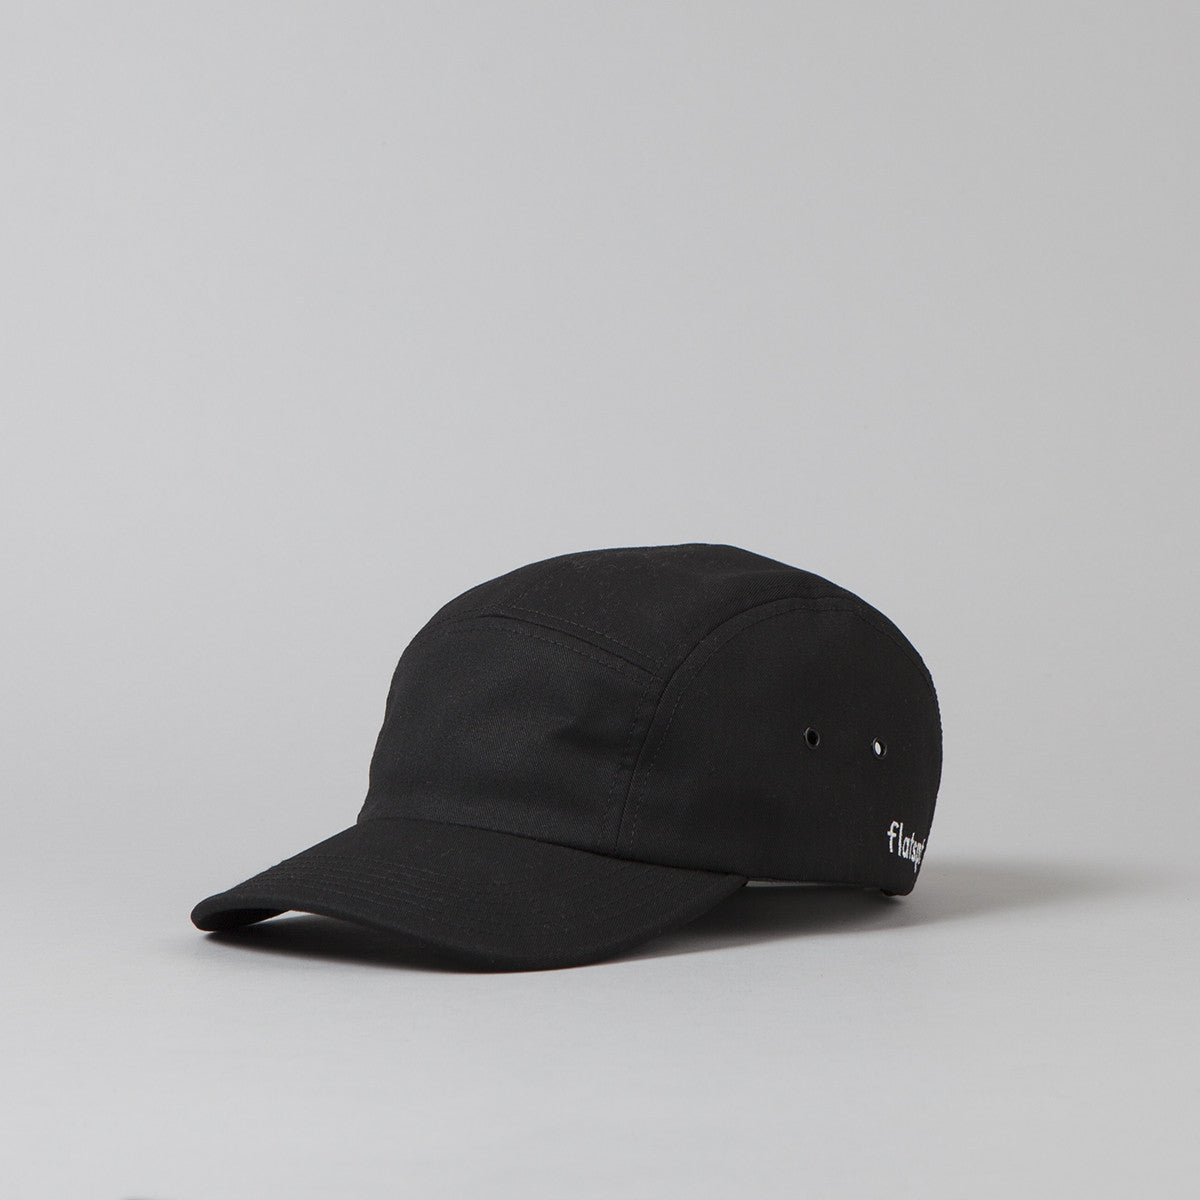 Flatspot Jockey Cap - Black